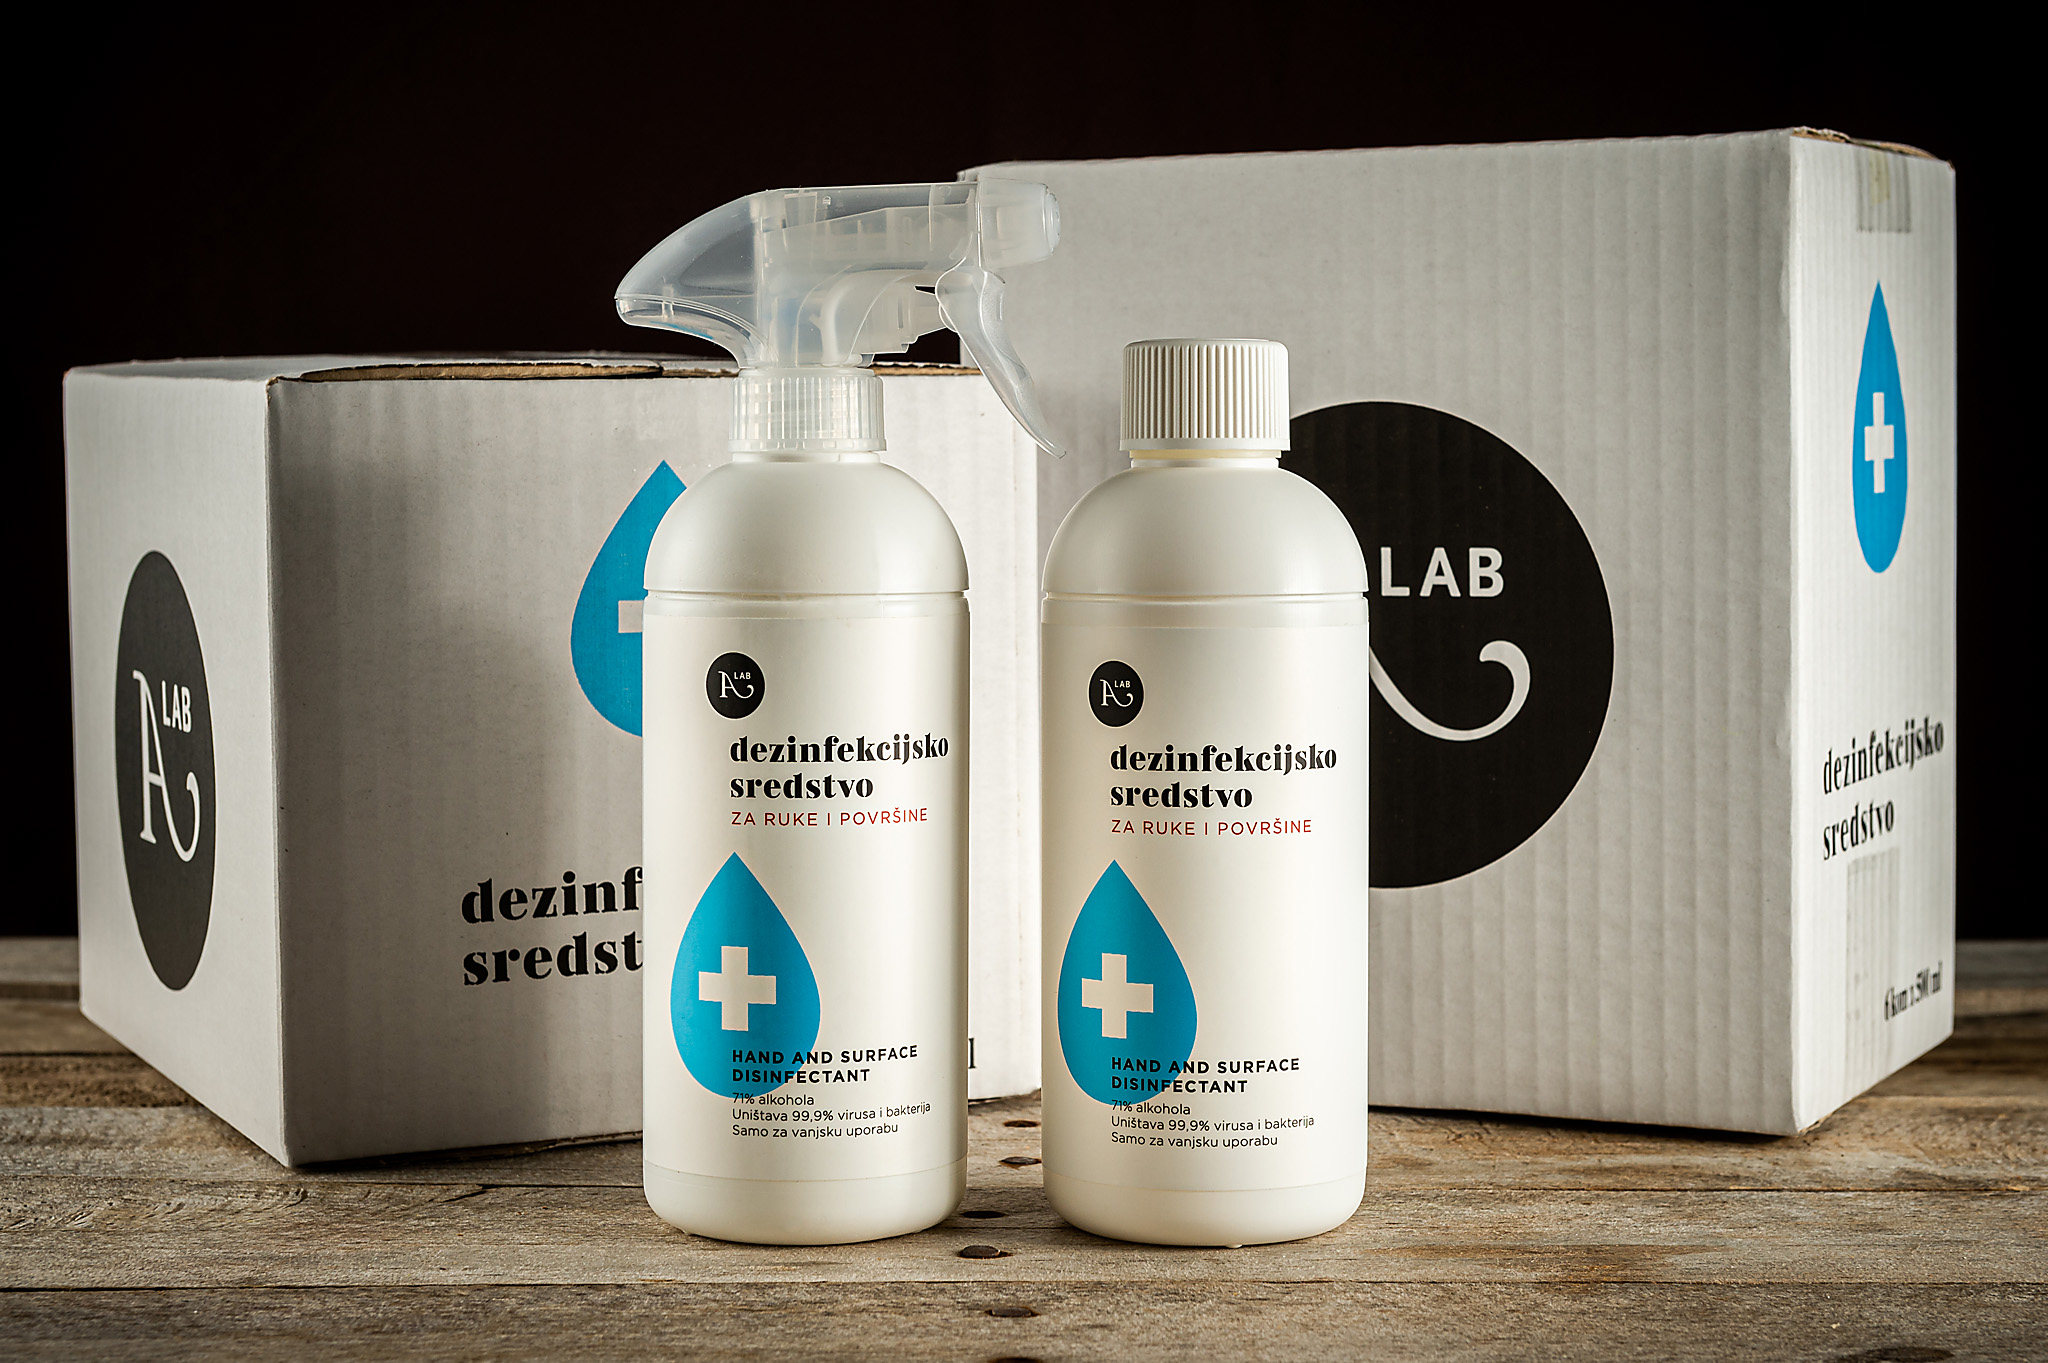 hren | plethora of creativity // A lab disinfection product photography